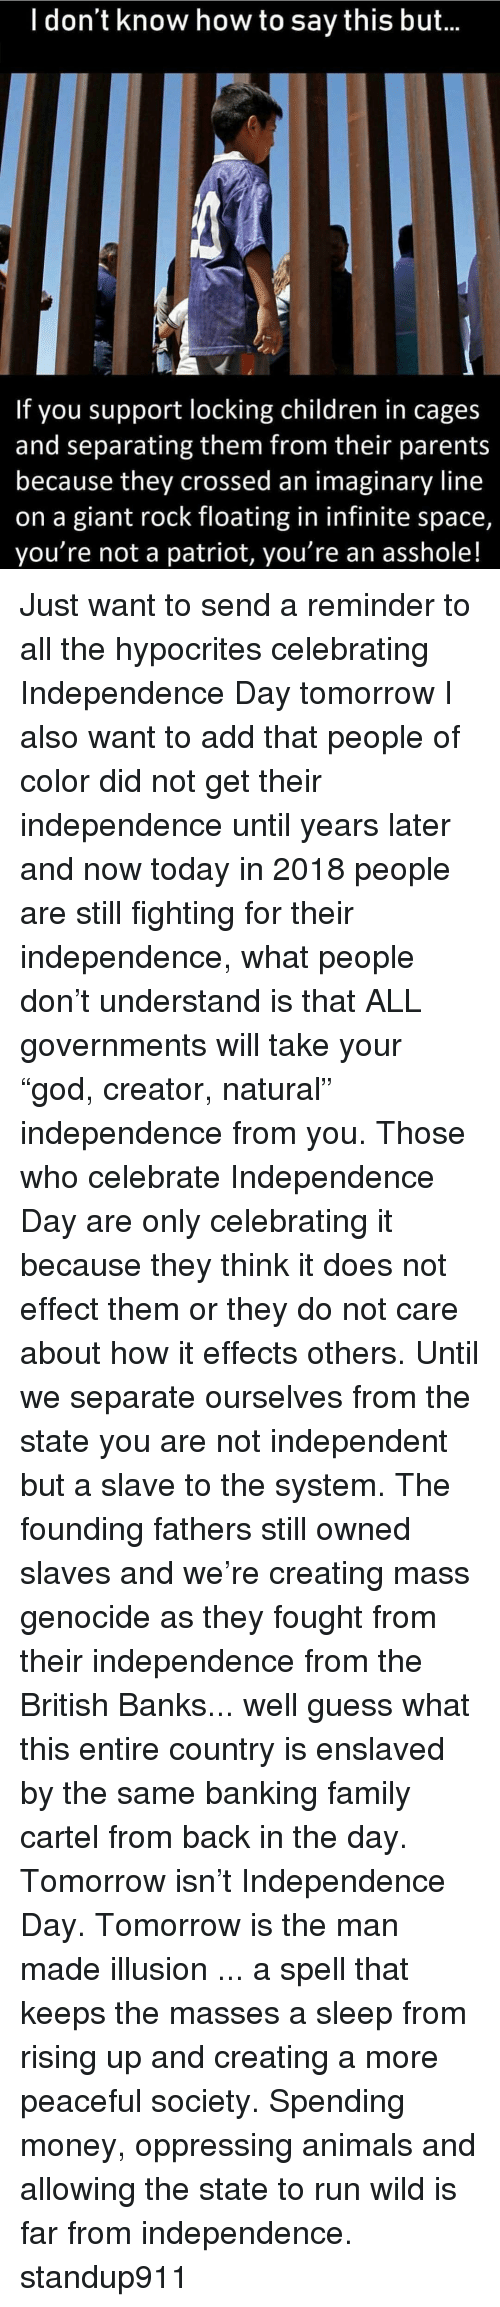 "Independence Day: l don't know how to say this but...  If you support locking children in cages  and separating them from their parents  because they crossed an imaginary line  on a giant rock floating in infinite space,  you're not a patriot, you're an asshole! Just want to send a reminder to all the hypocrites celebrating Independence Day tomorrow I also want to add that people of color did not get their independence until years later and now today in 2018 people are still fighting for their independence, what people don't understand is that ALL governments will take your ""god, creator, natural"" independence from you. Those who celebrate Independence Day are only celebrating it because they think it does not effect them or they do not care about how it effects others. Until we separate ourselves from the state you are not independent but a slave to the system. The founding fathers still owned slaves and we're creating mass genocide as they fought from their independence from the British Banks... well guess what this entire country is enslaved by the same banking family cartel from back in the day. Tomorrow isn't Independence Day. Tomorrow is the man made illusion ... a spell that keeps the masses a sleep from rising up and creating a more peaceful society. Spending money, oppressing animals and allowing the state to run wild is far from independence. standup911"